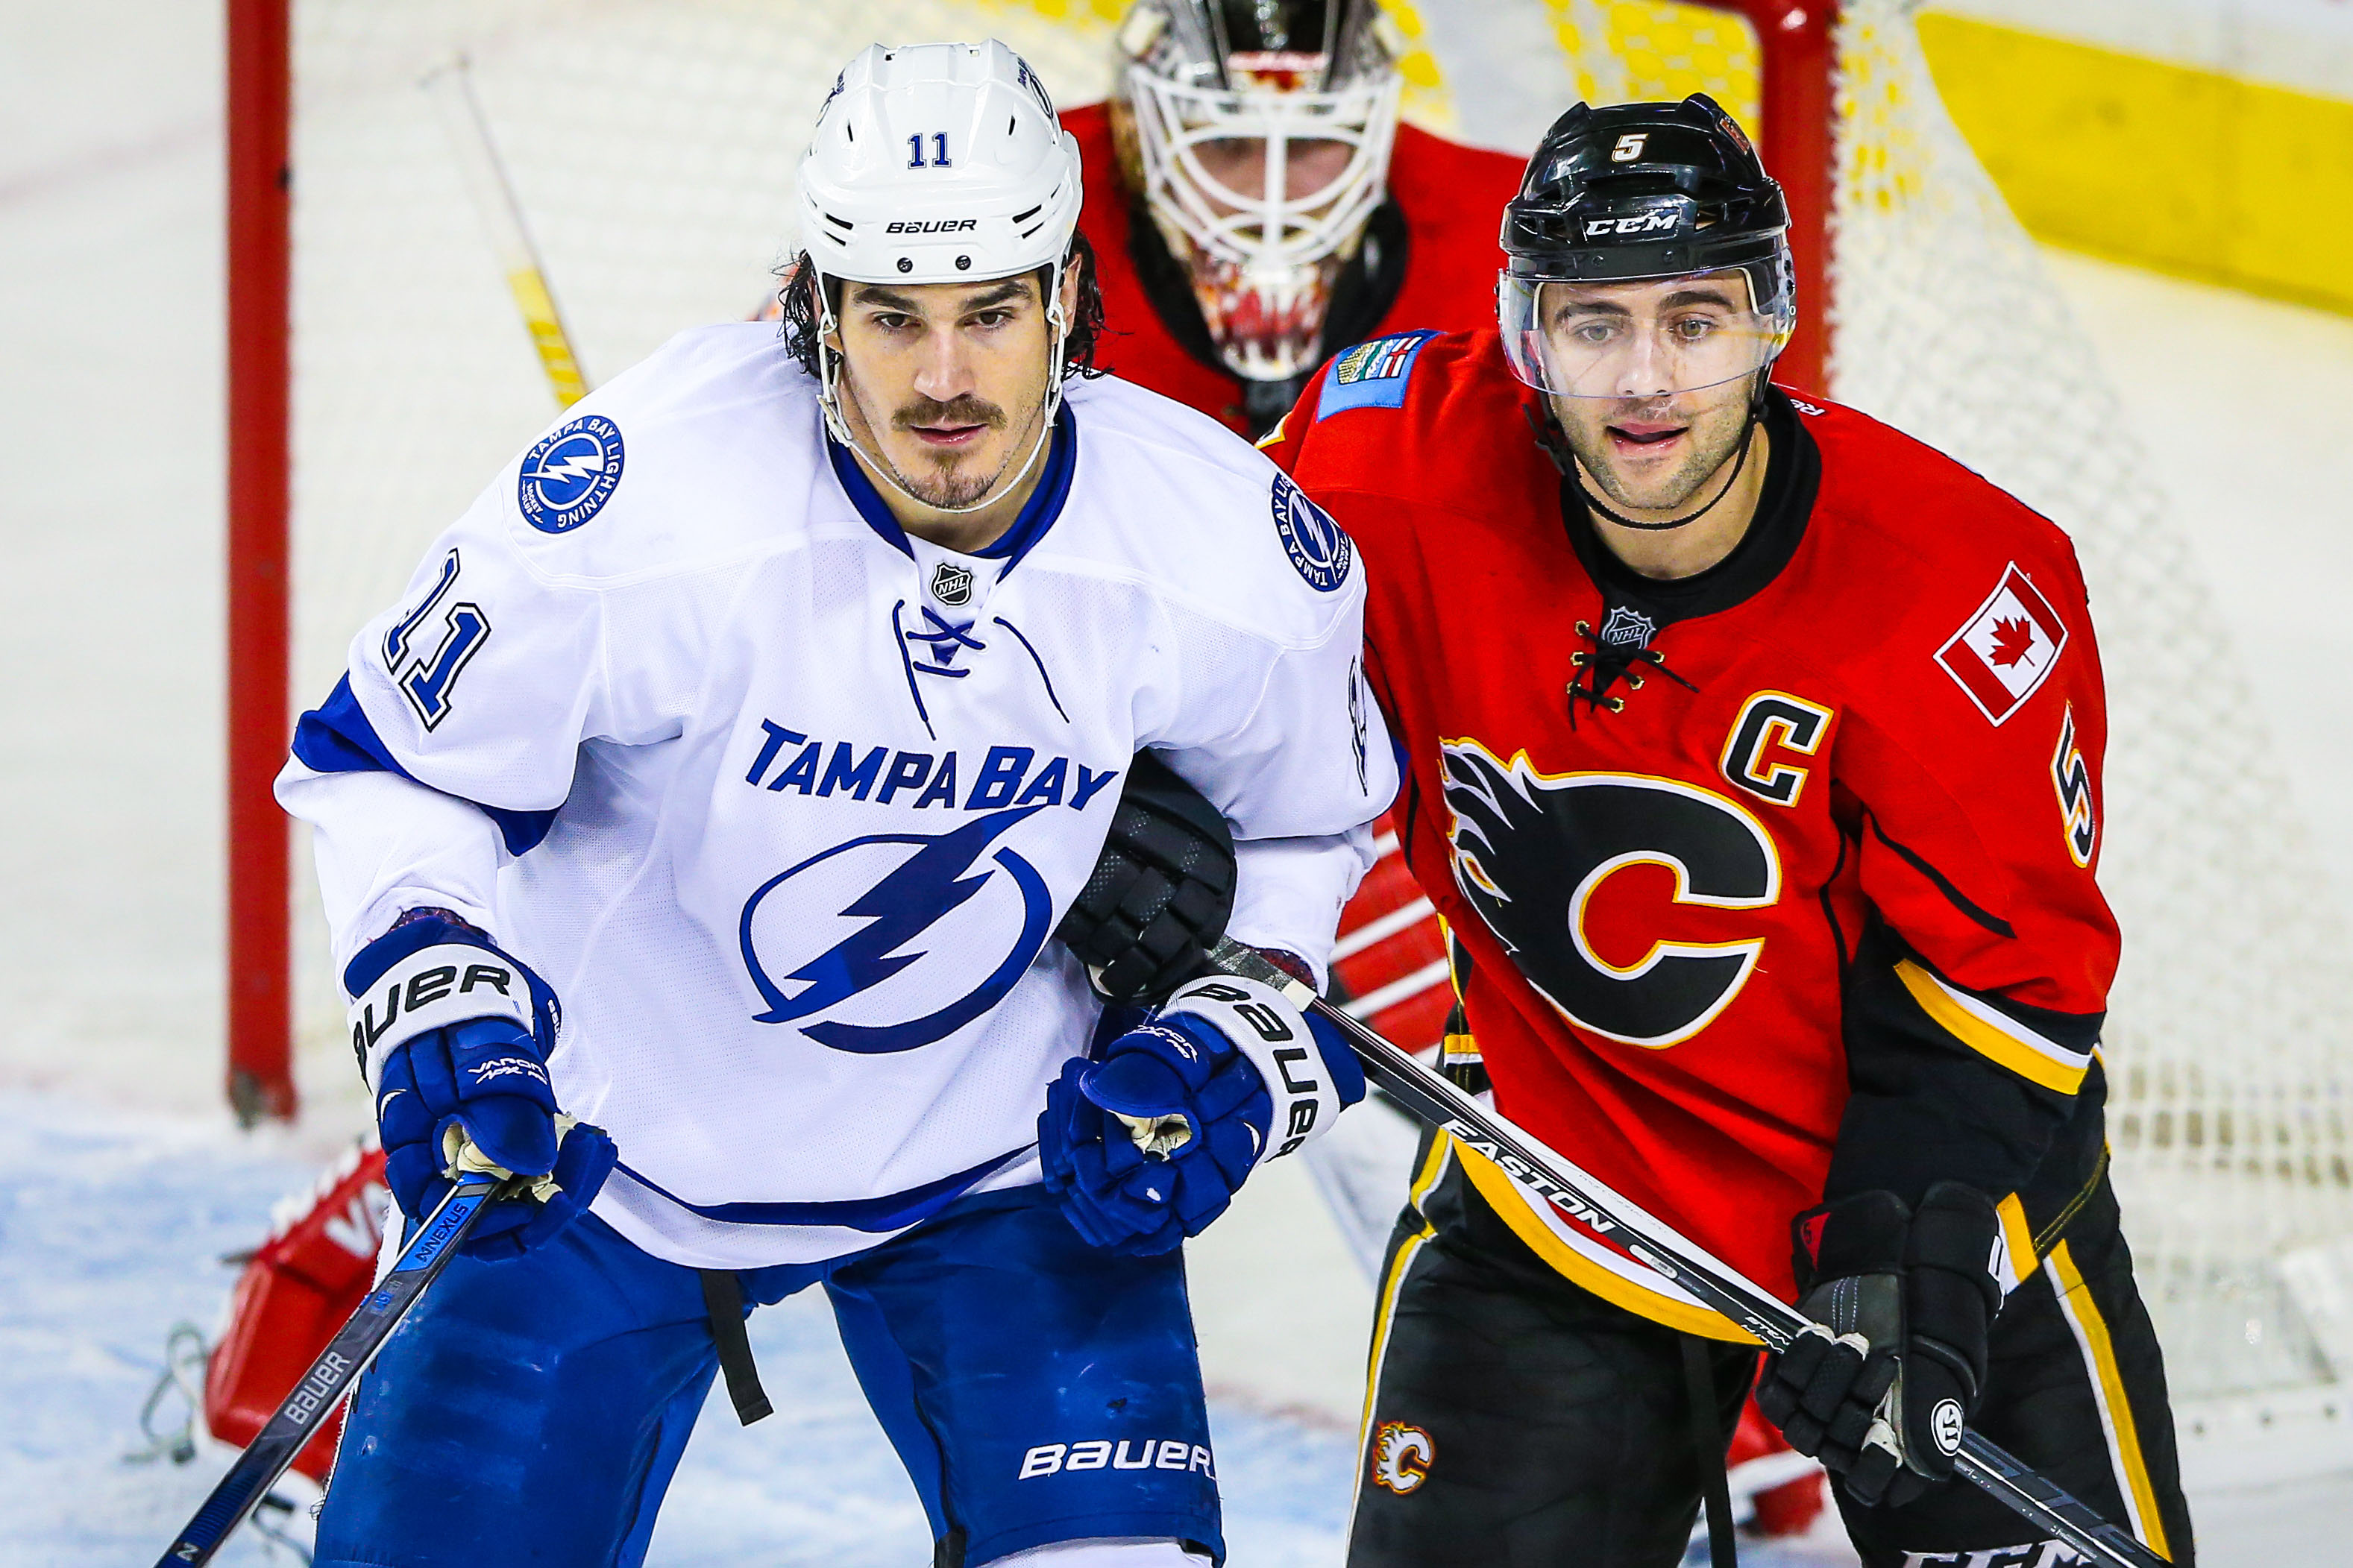 NHL: Tampa Bay Lightning at Calgary Flames